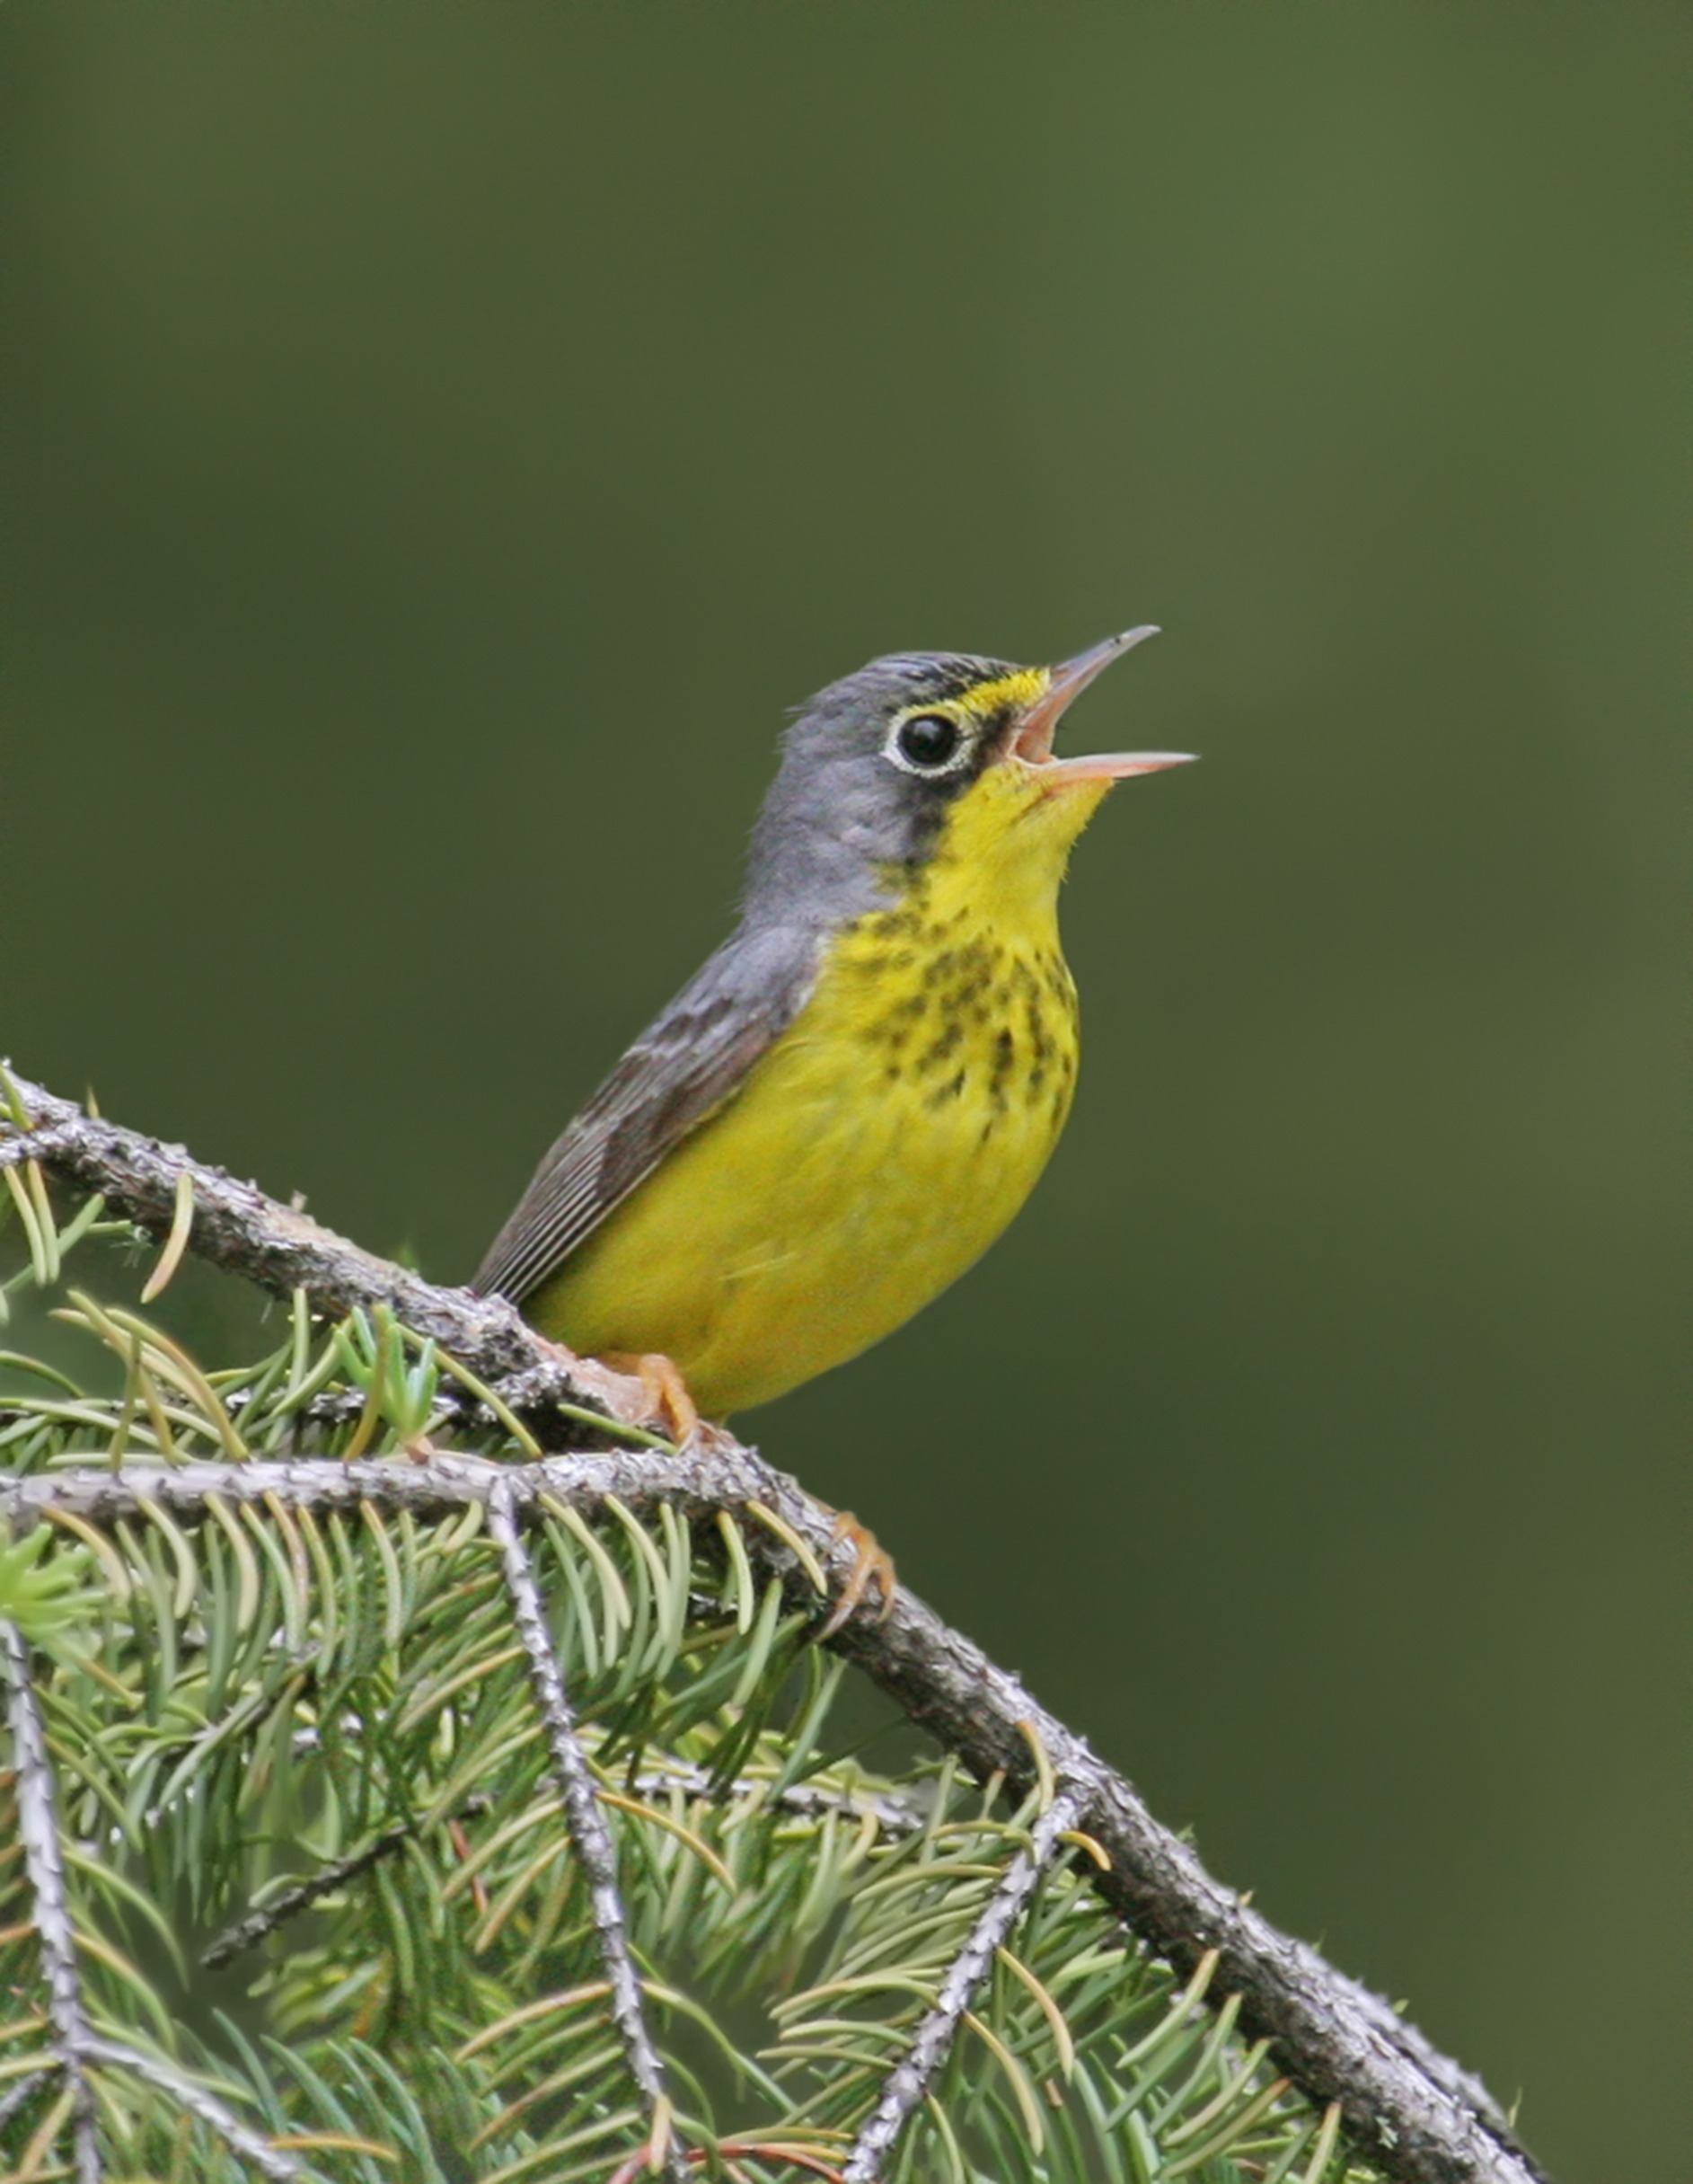 Canada Warbler singing from a branch.